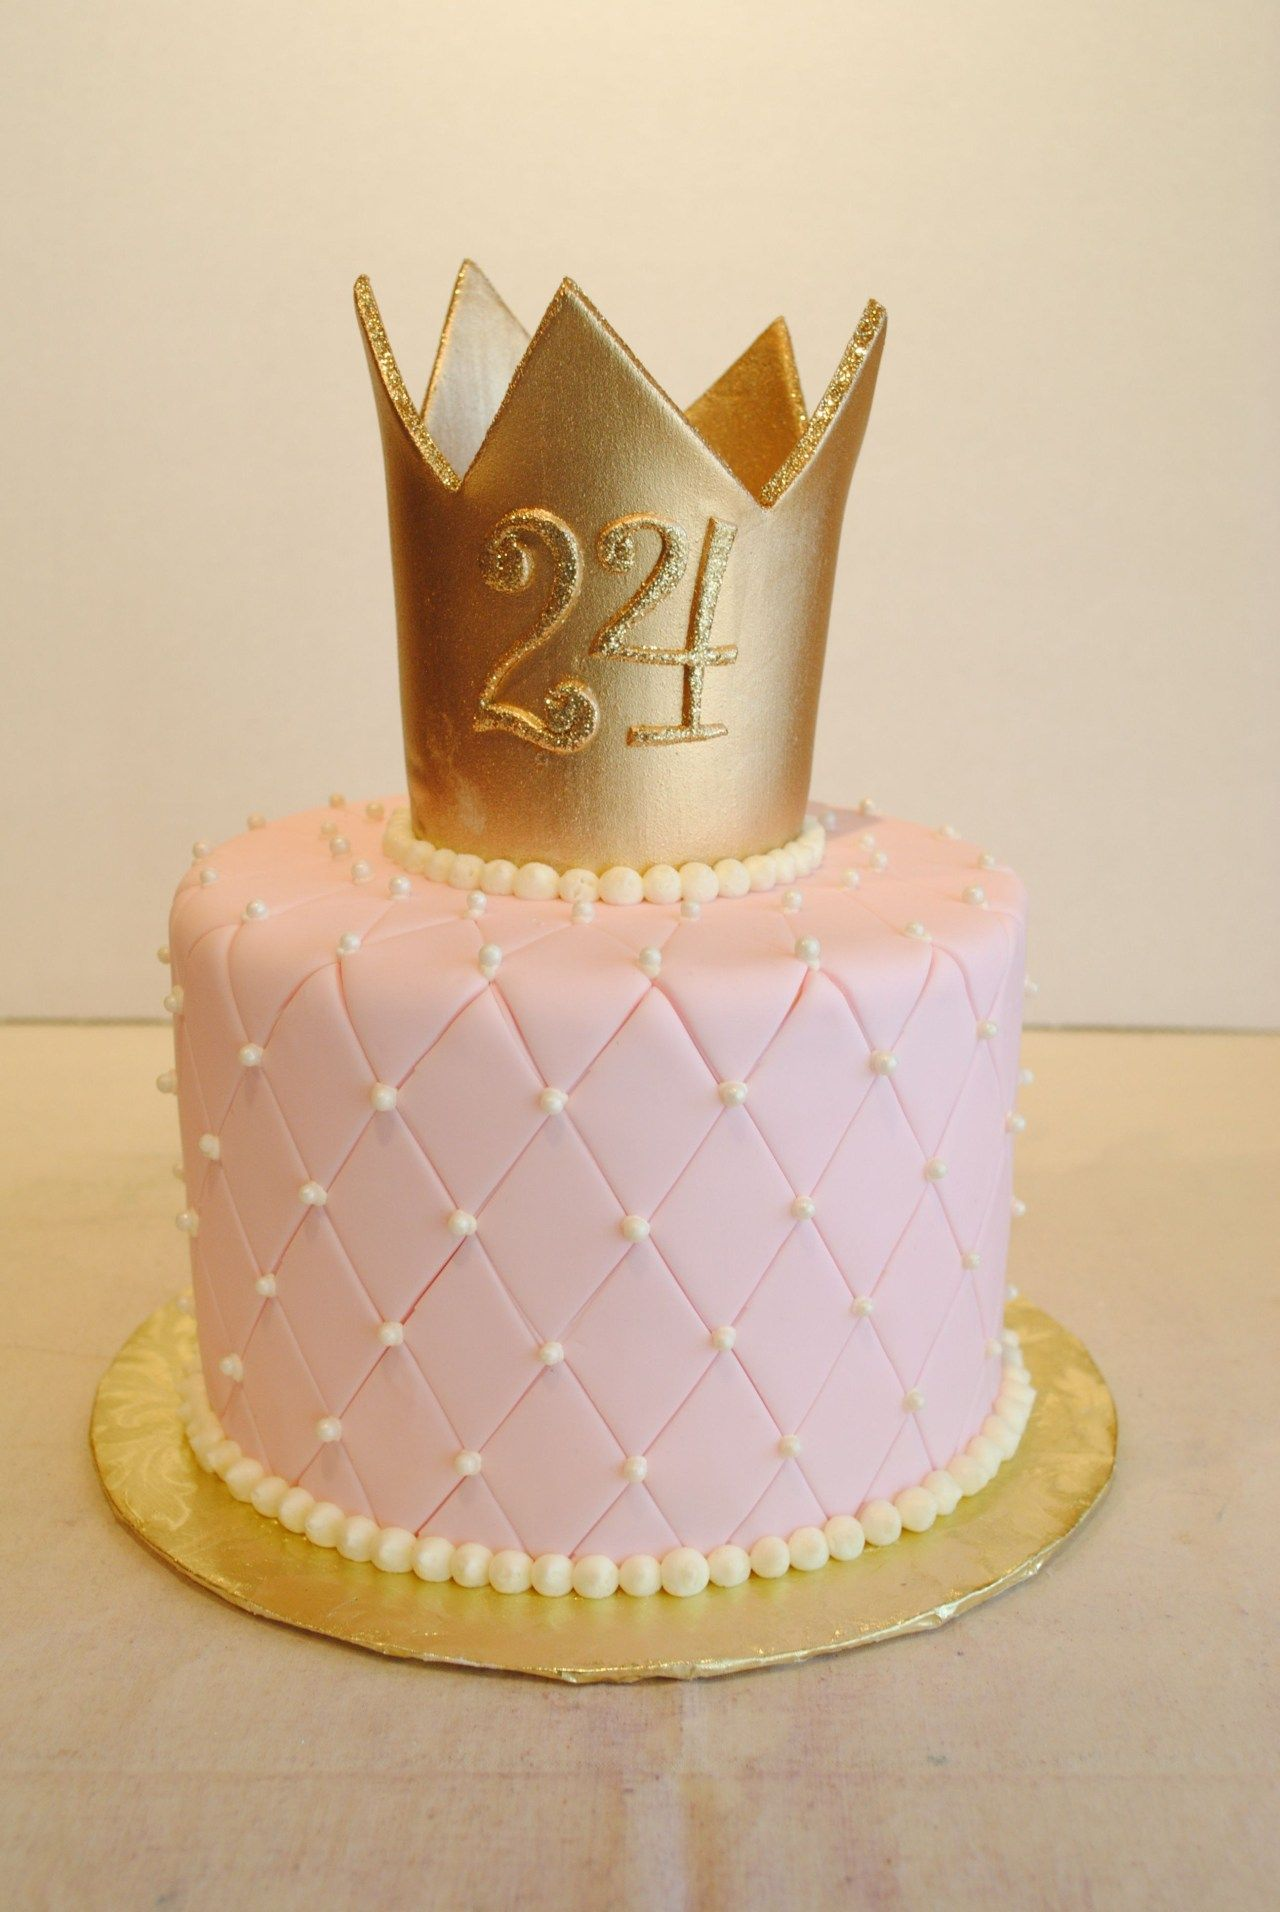 27 Amazing Image Of Crown Birthday Cake Fondant Cakes Birthday